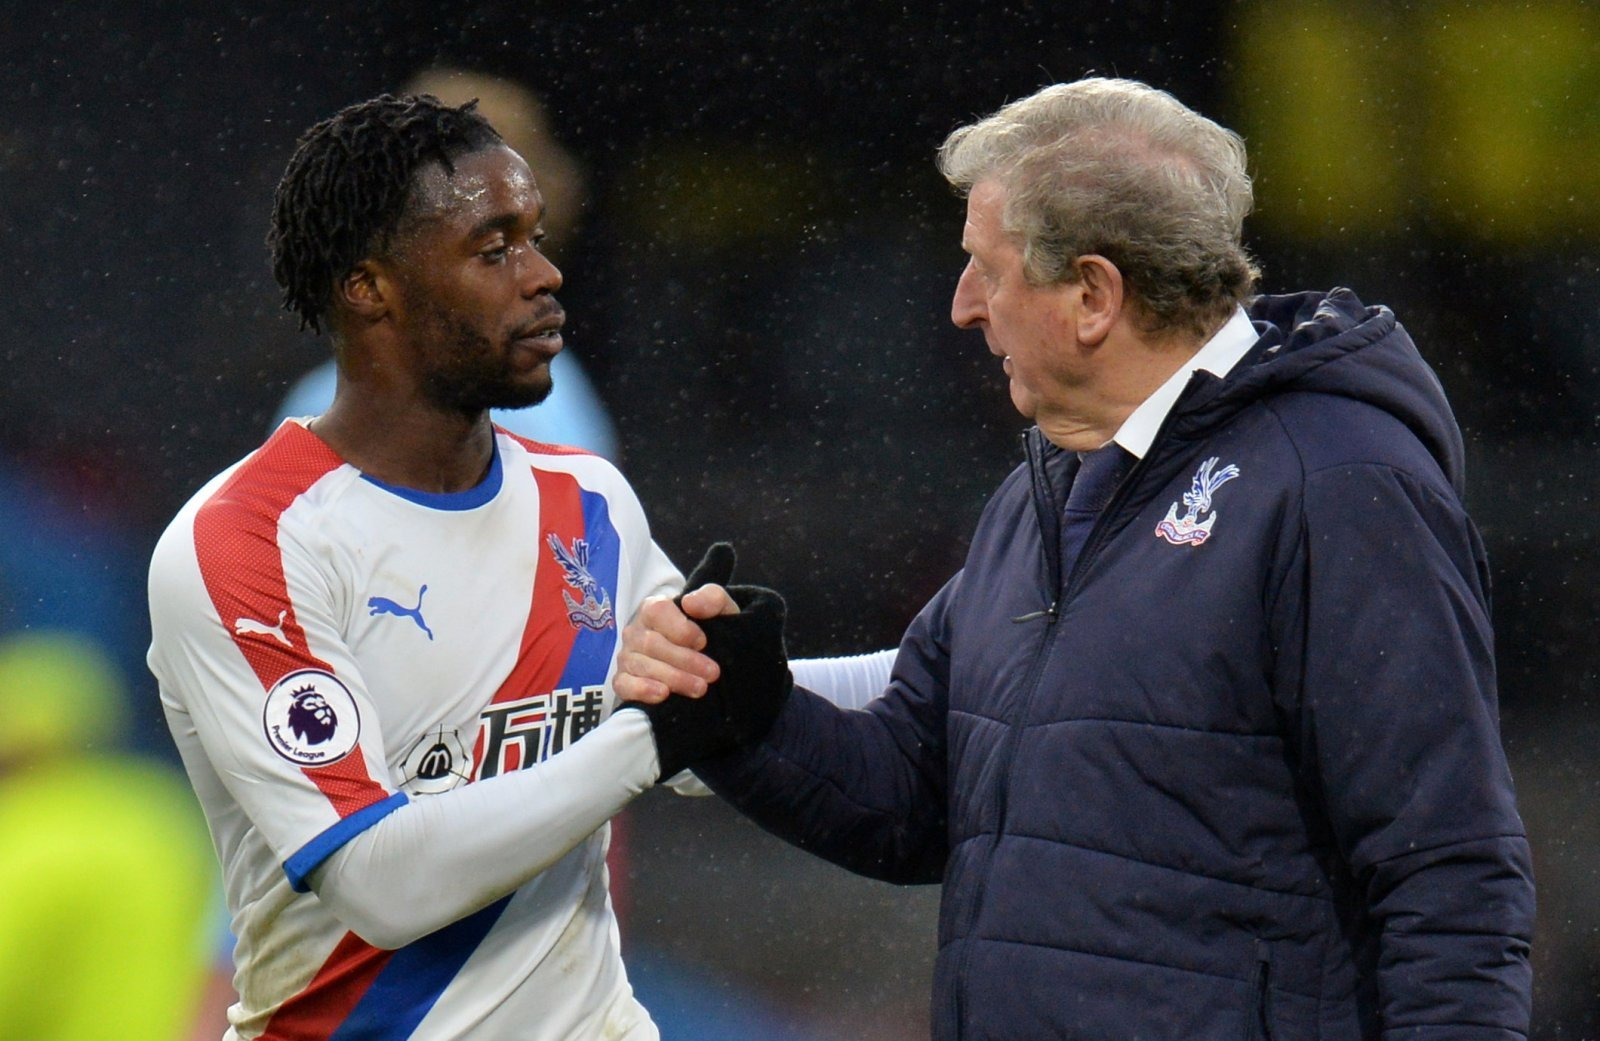 Crystal Palace: Fans react to drubbing of Bristol City